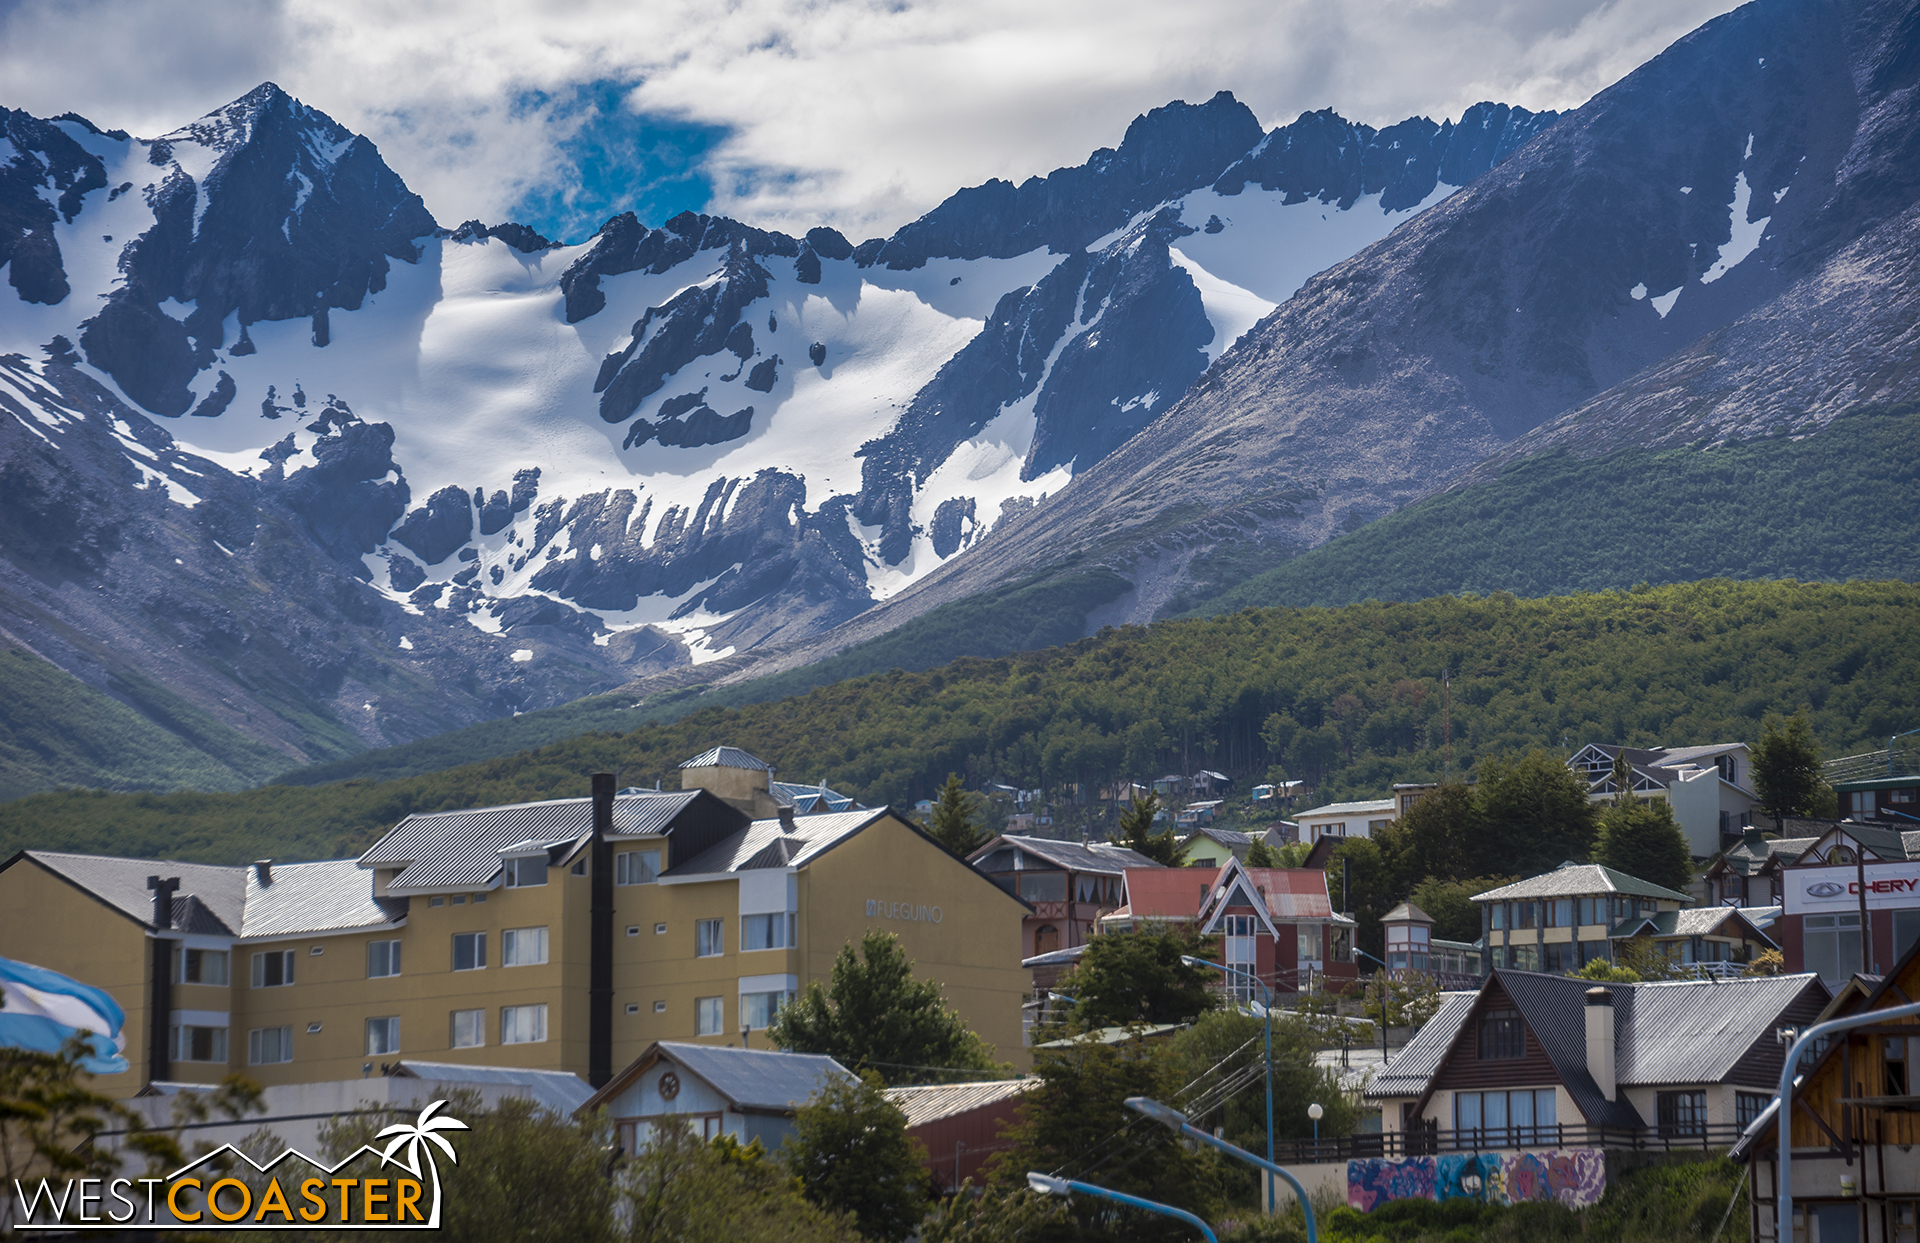 The (remnants of the) Martial Glacier dominate(s) the view in Ushuaia.